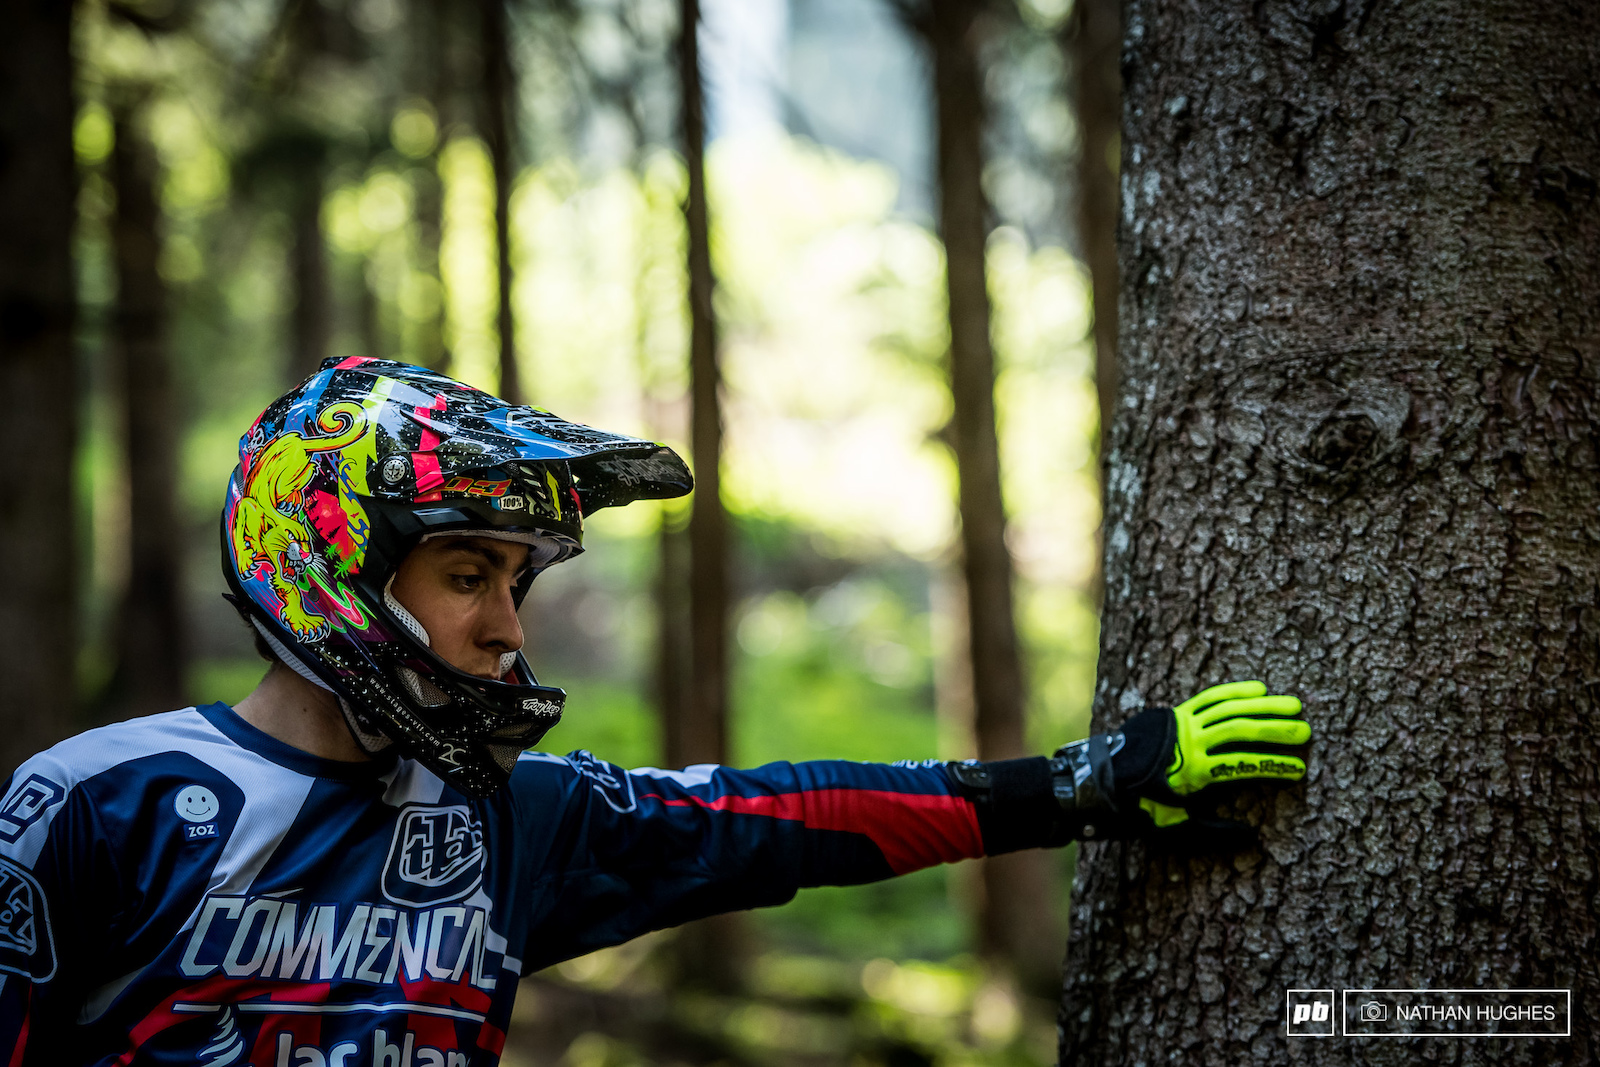 Commencal Lac Blanc s Amaury Pierron and team mate Tomas Estaque looked on mighty fine form today in the forest.